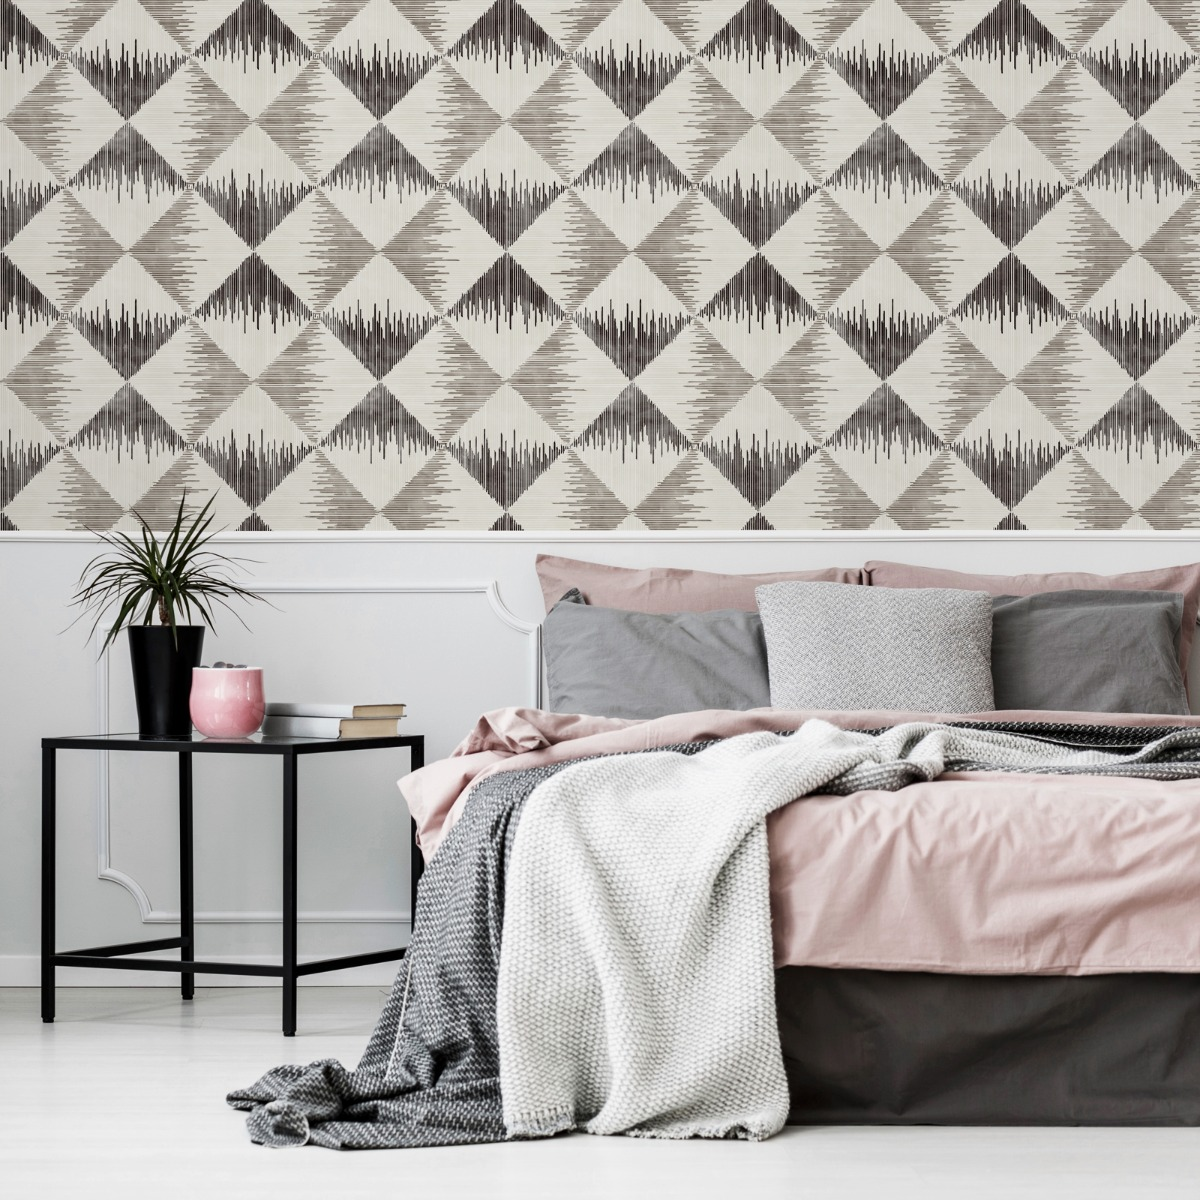 Aztec Geometric Wallpaper Mono Arthouse 909401